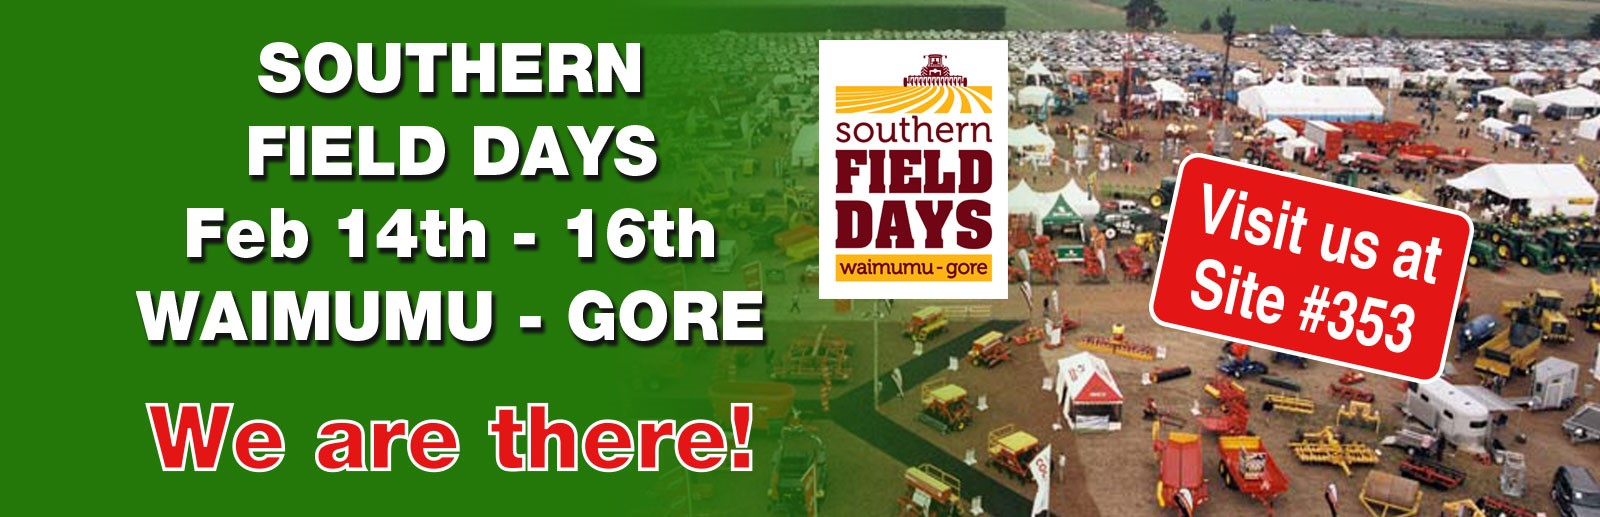 Southern Field Days website image